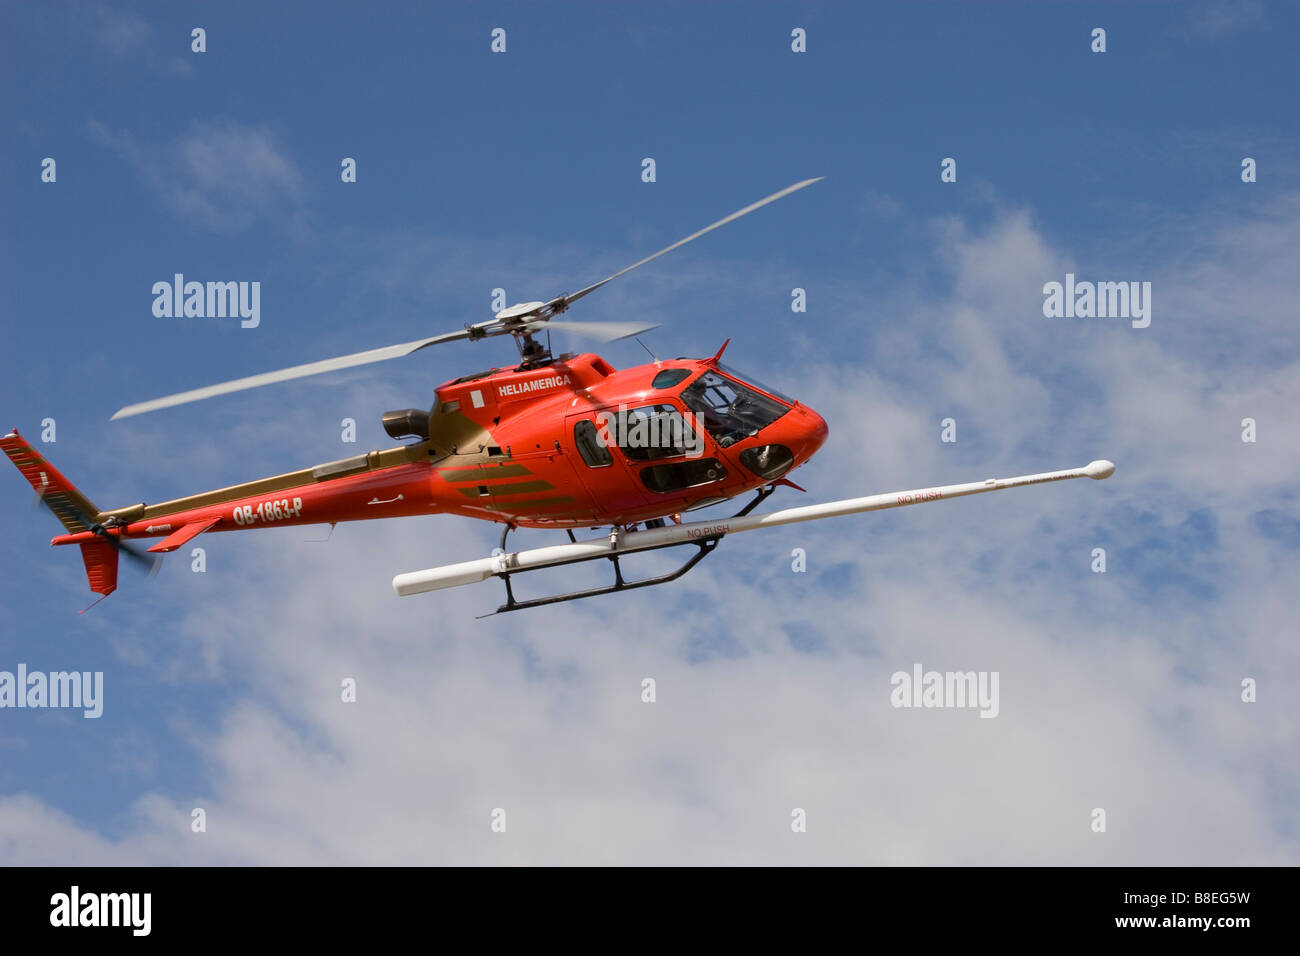 helicopter aerial work survey mining AS350 astar eurocopter - Stock Image